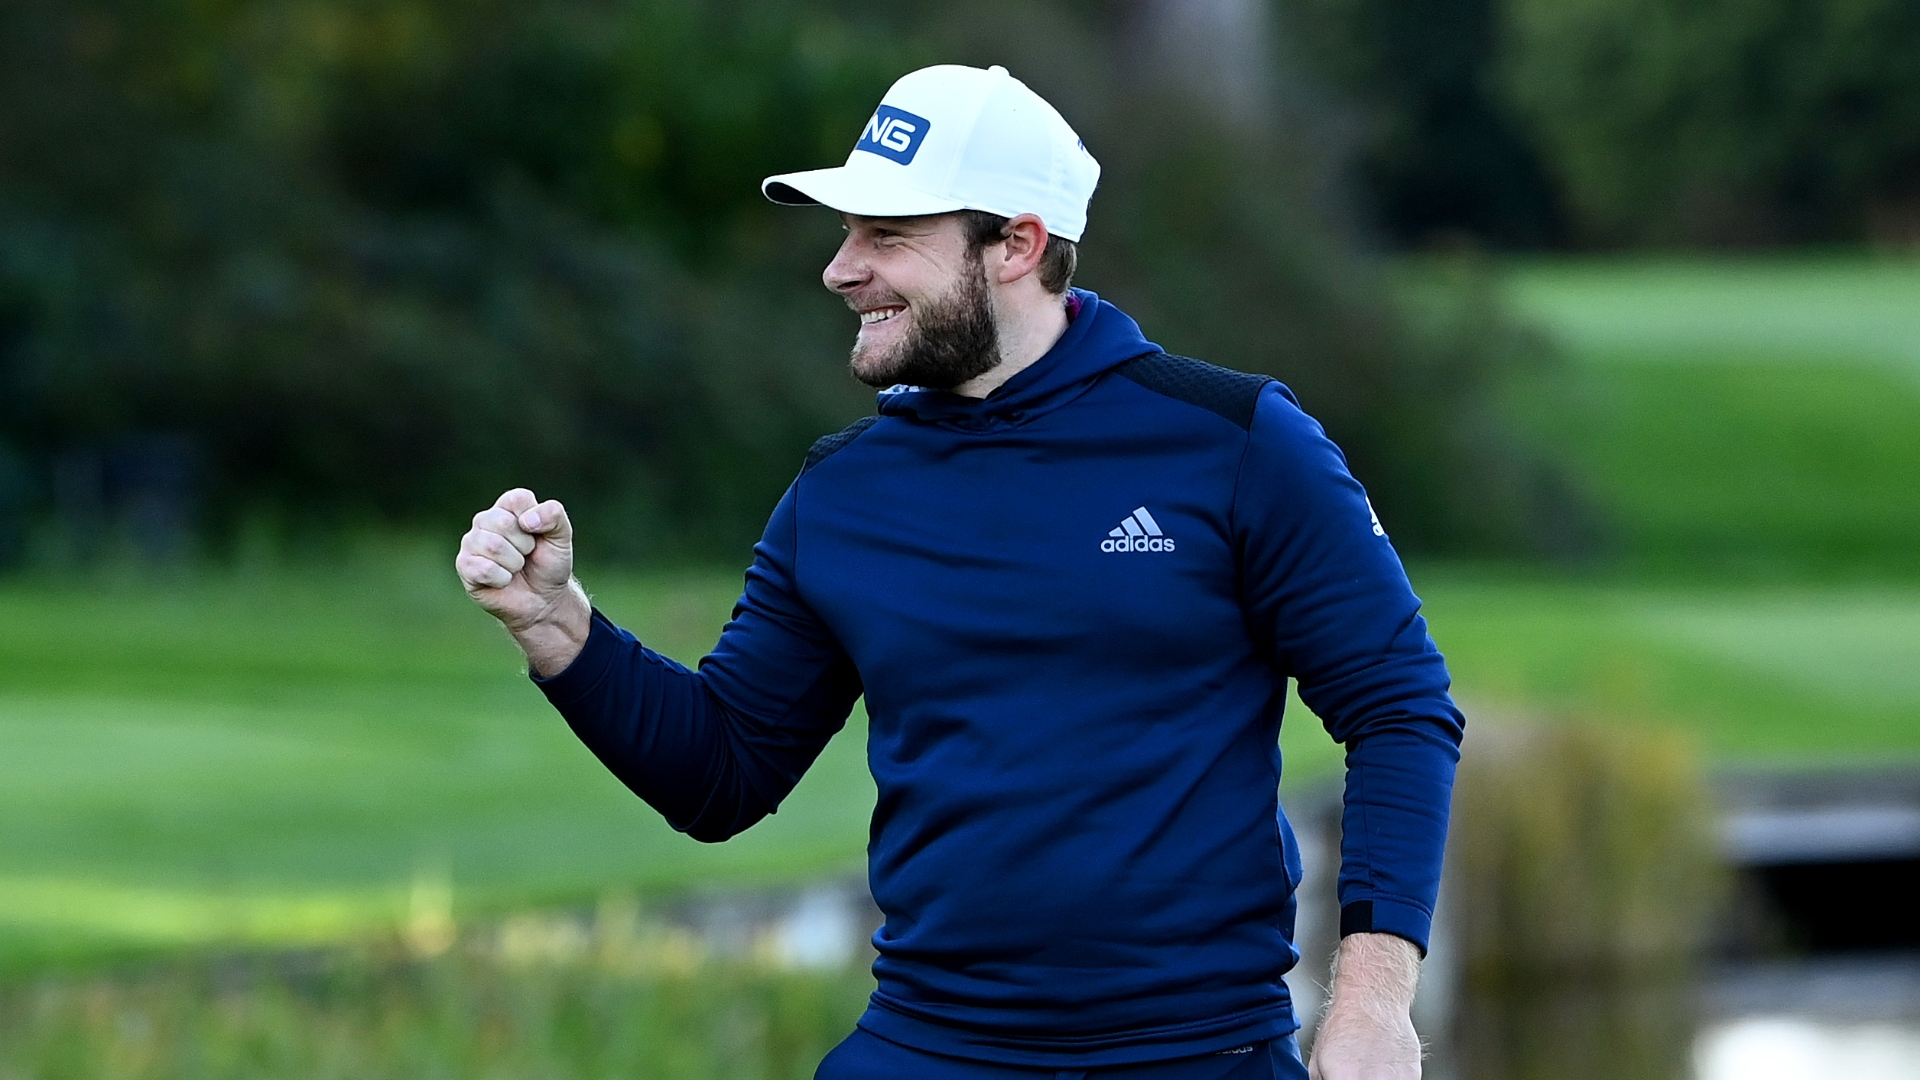 BMW PGA Championship: Hatton finishes in style to seal dream victory